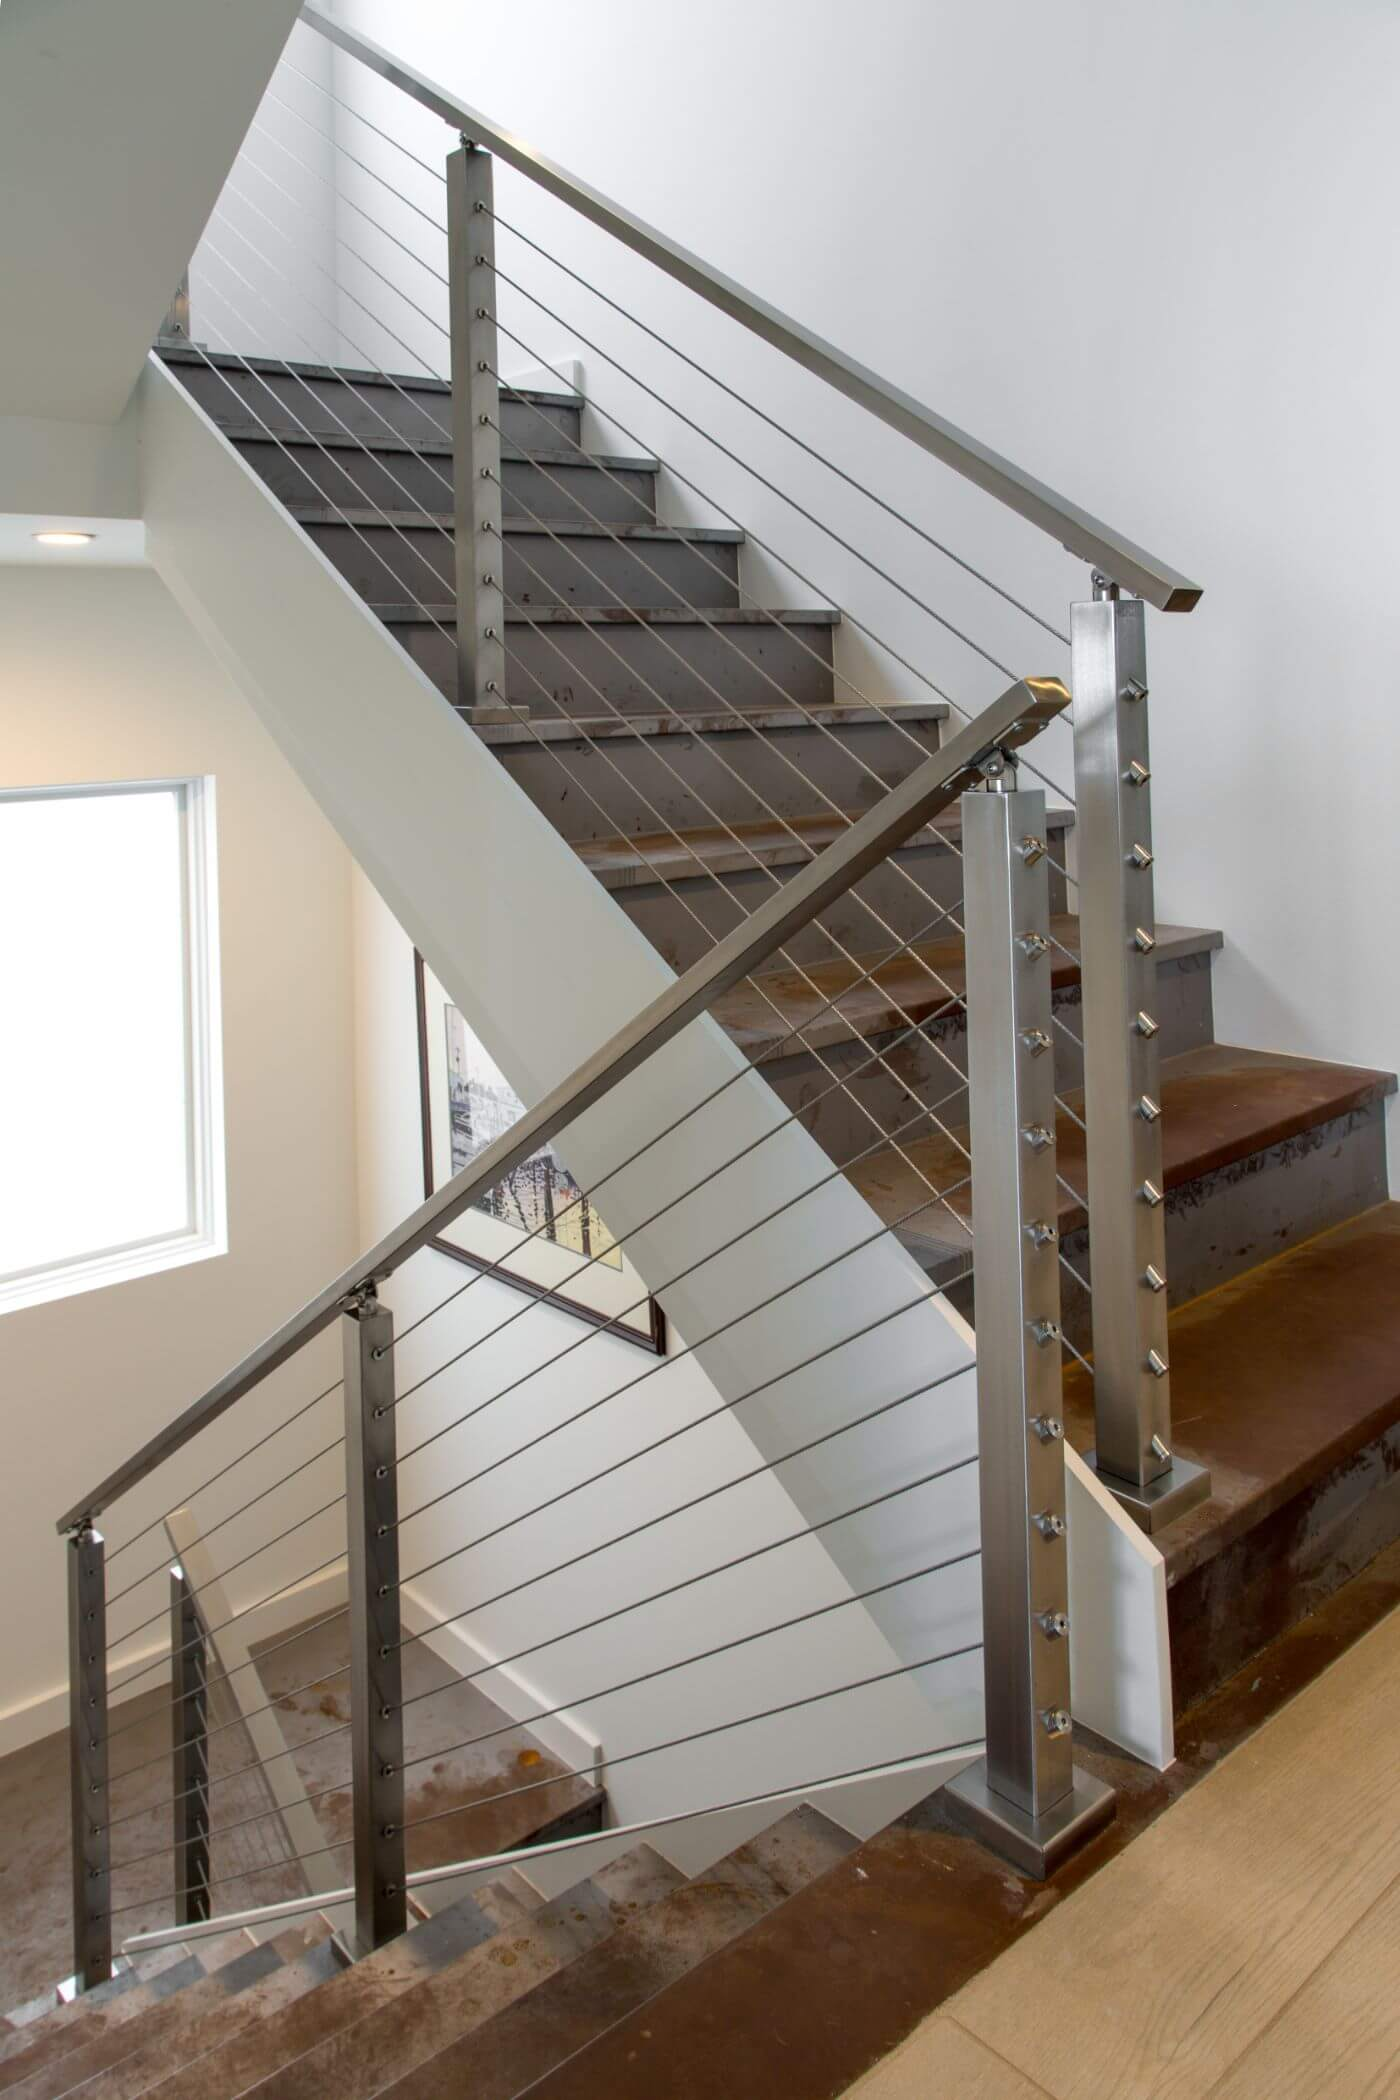 Stainless Steel Railing for Stairs